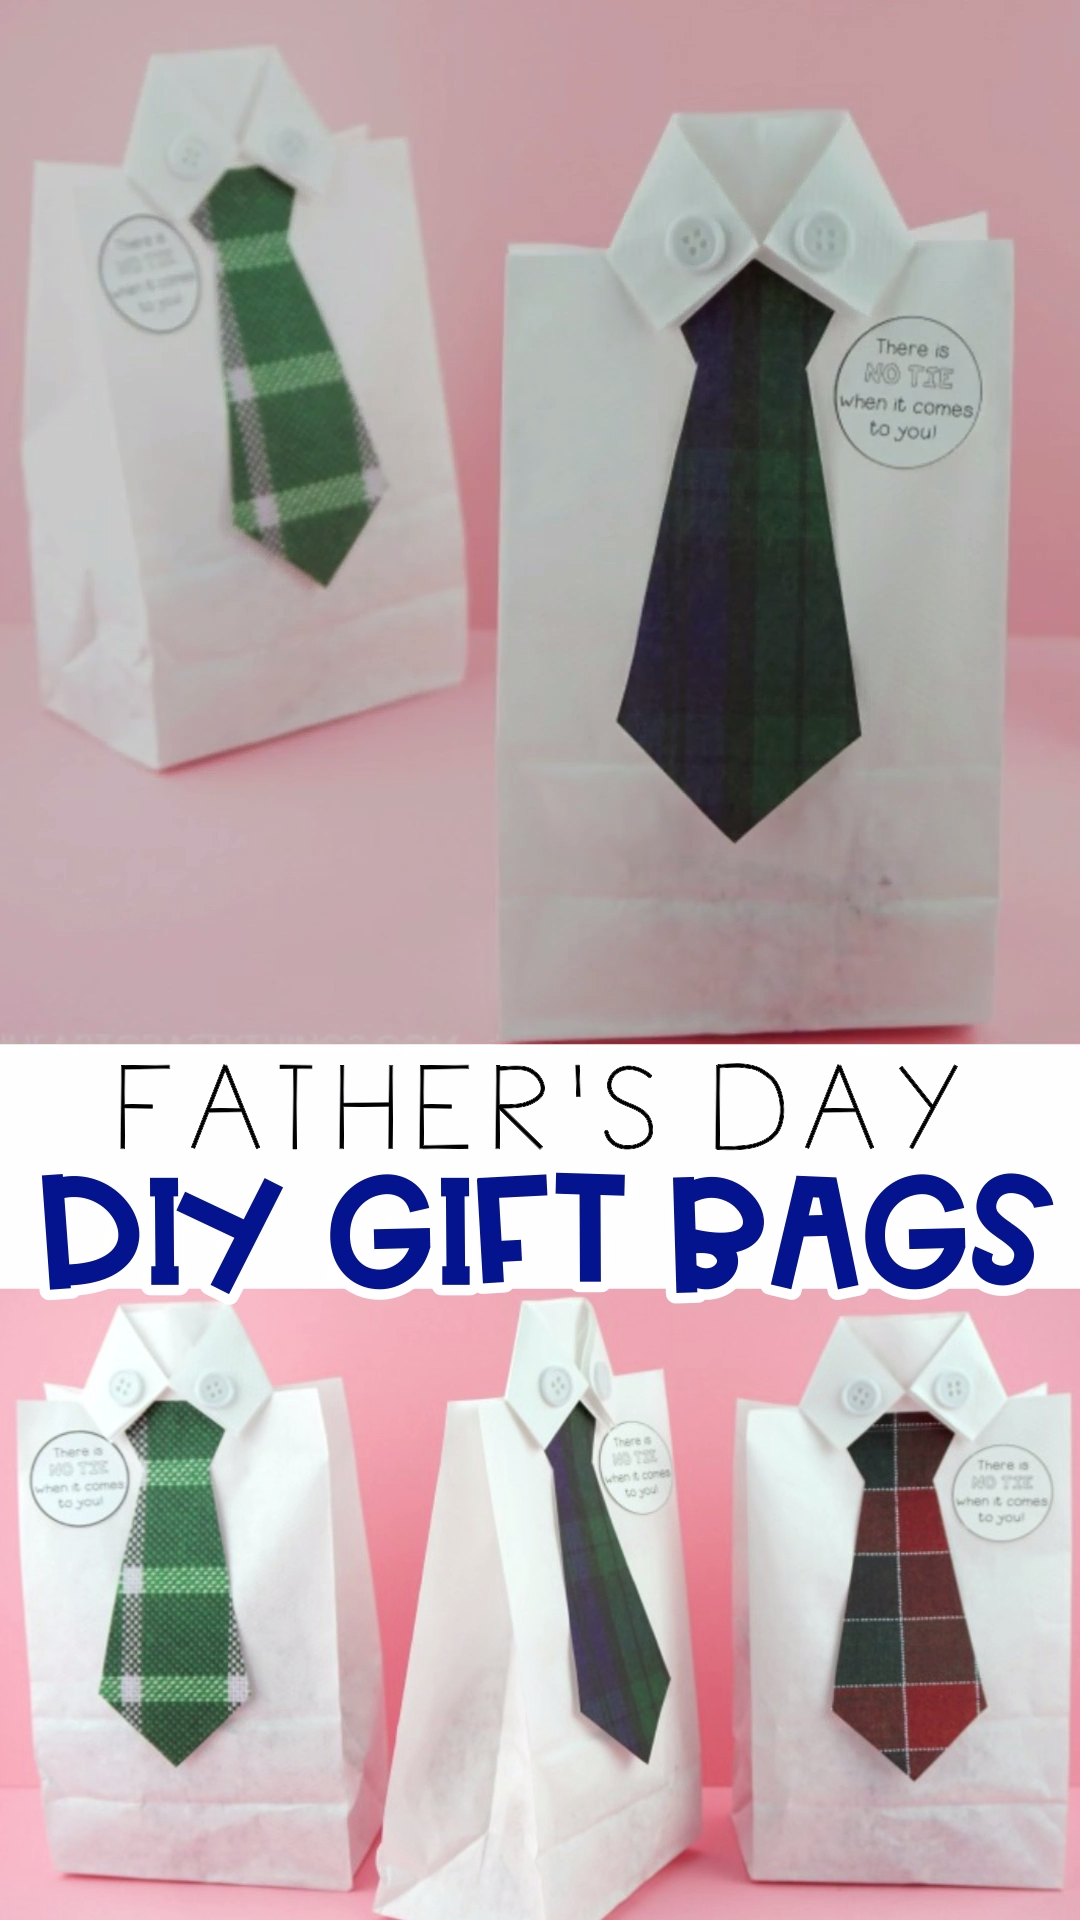 How to Make a DIY Father's Day Gift Bag